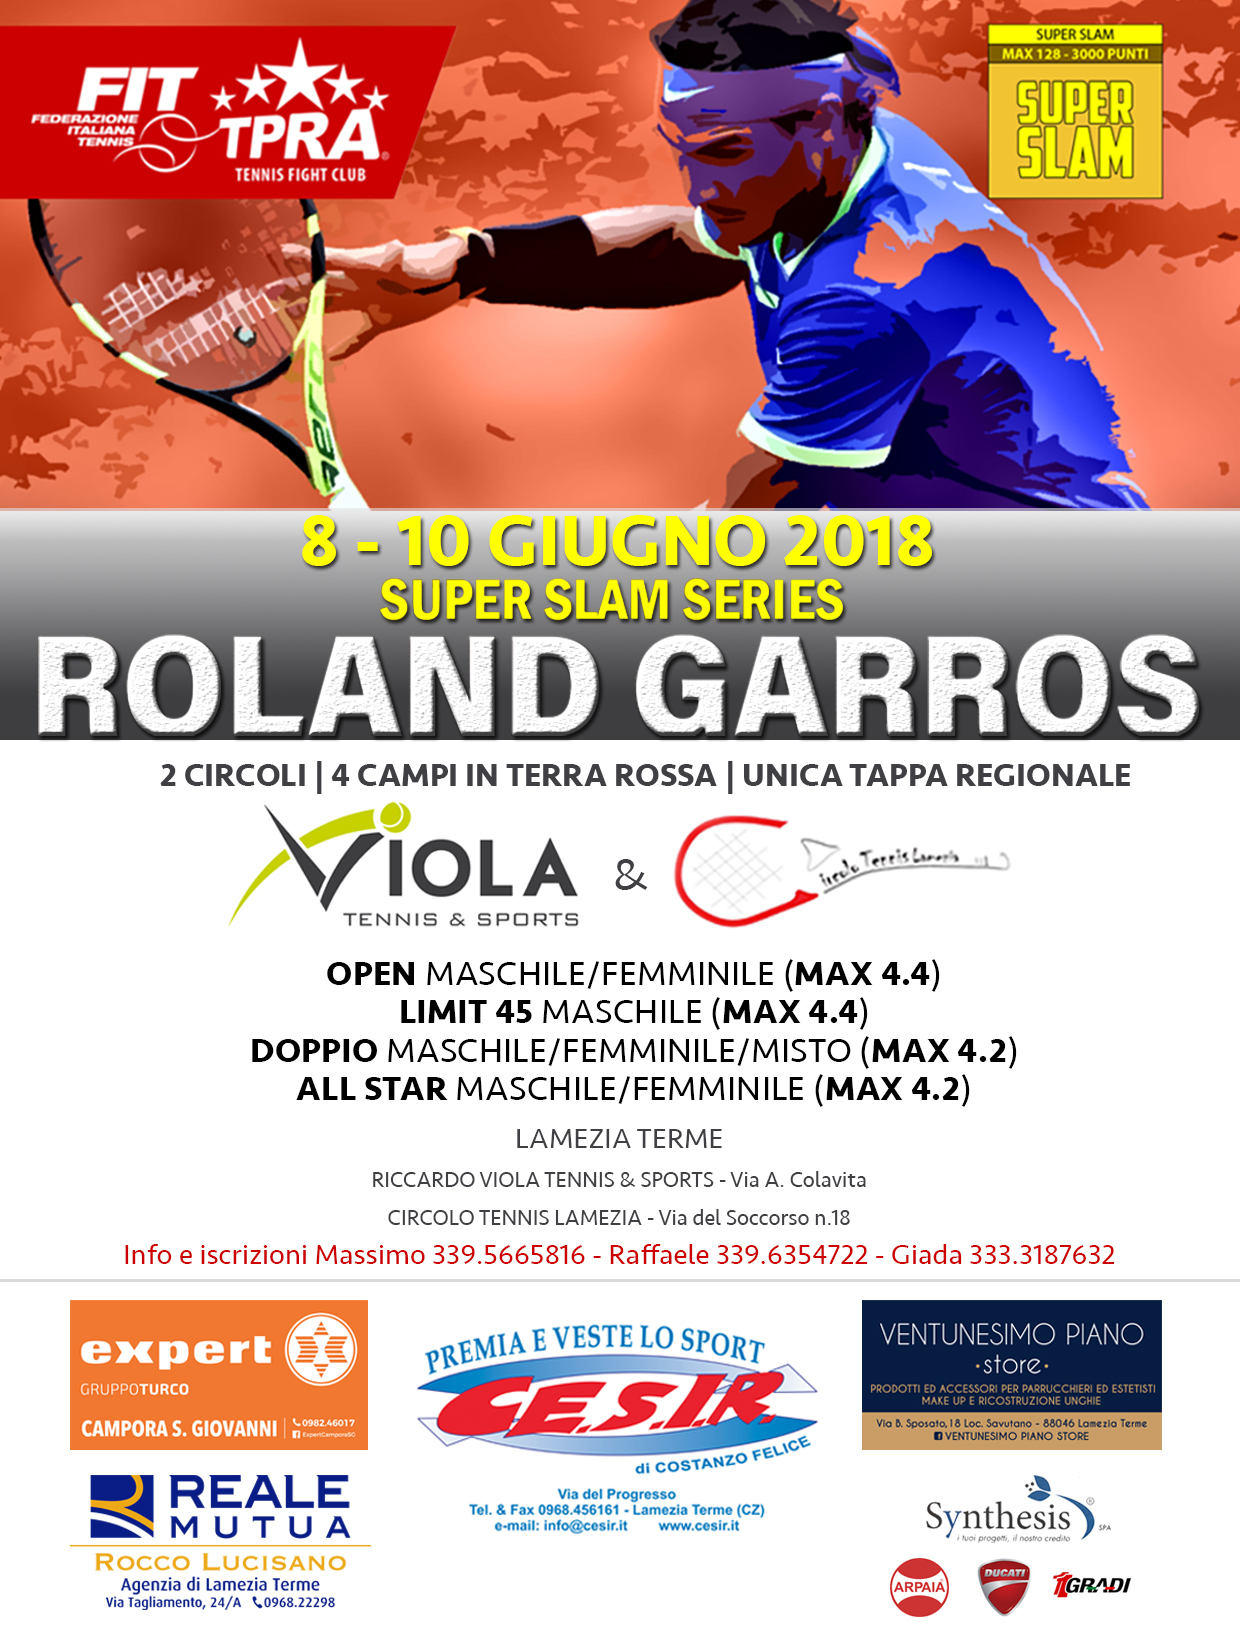 Super Slam Series - Roland Garros